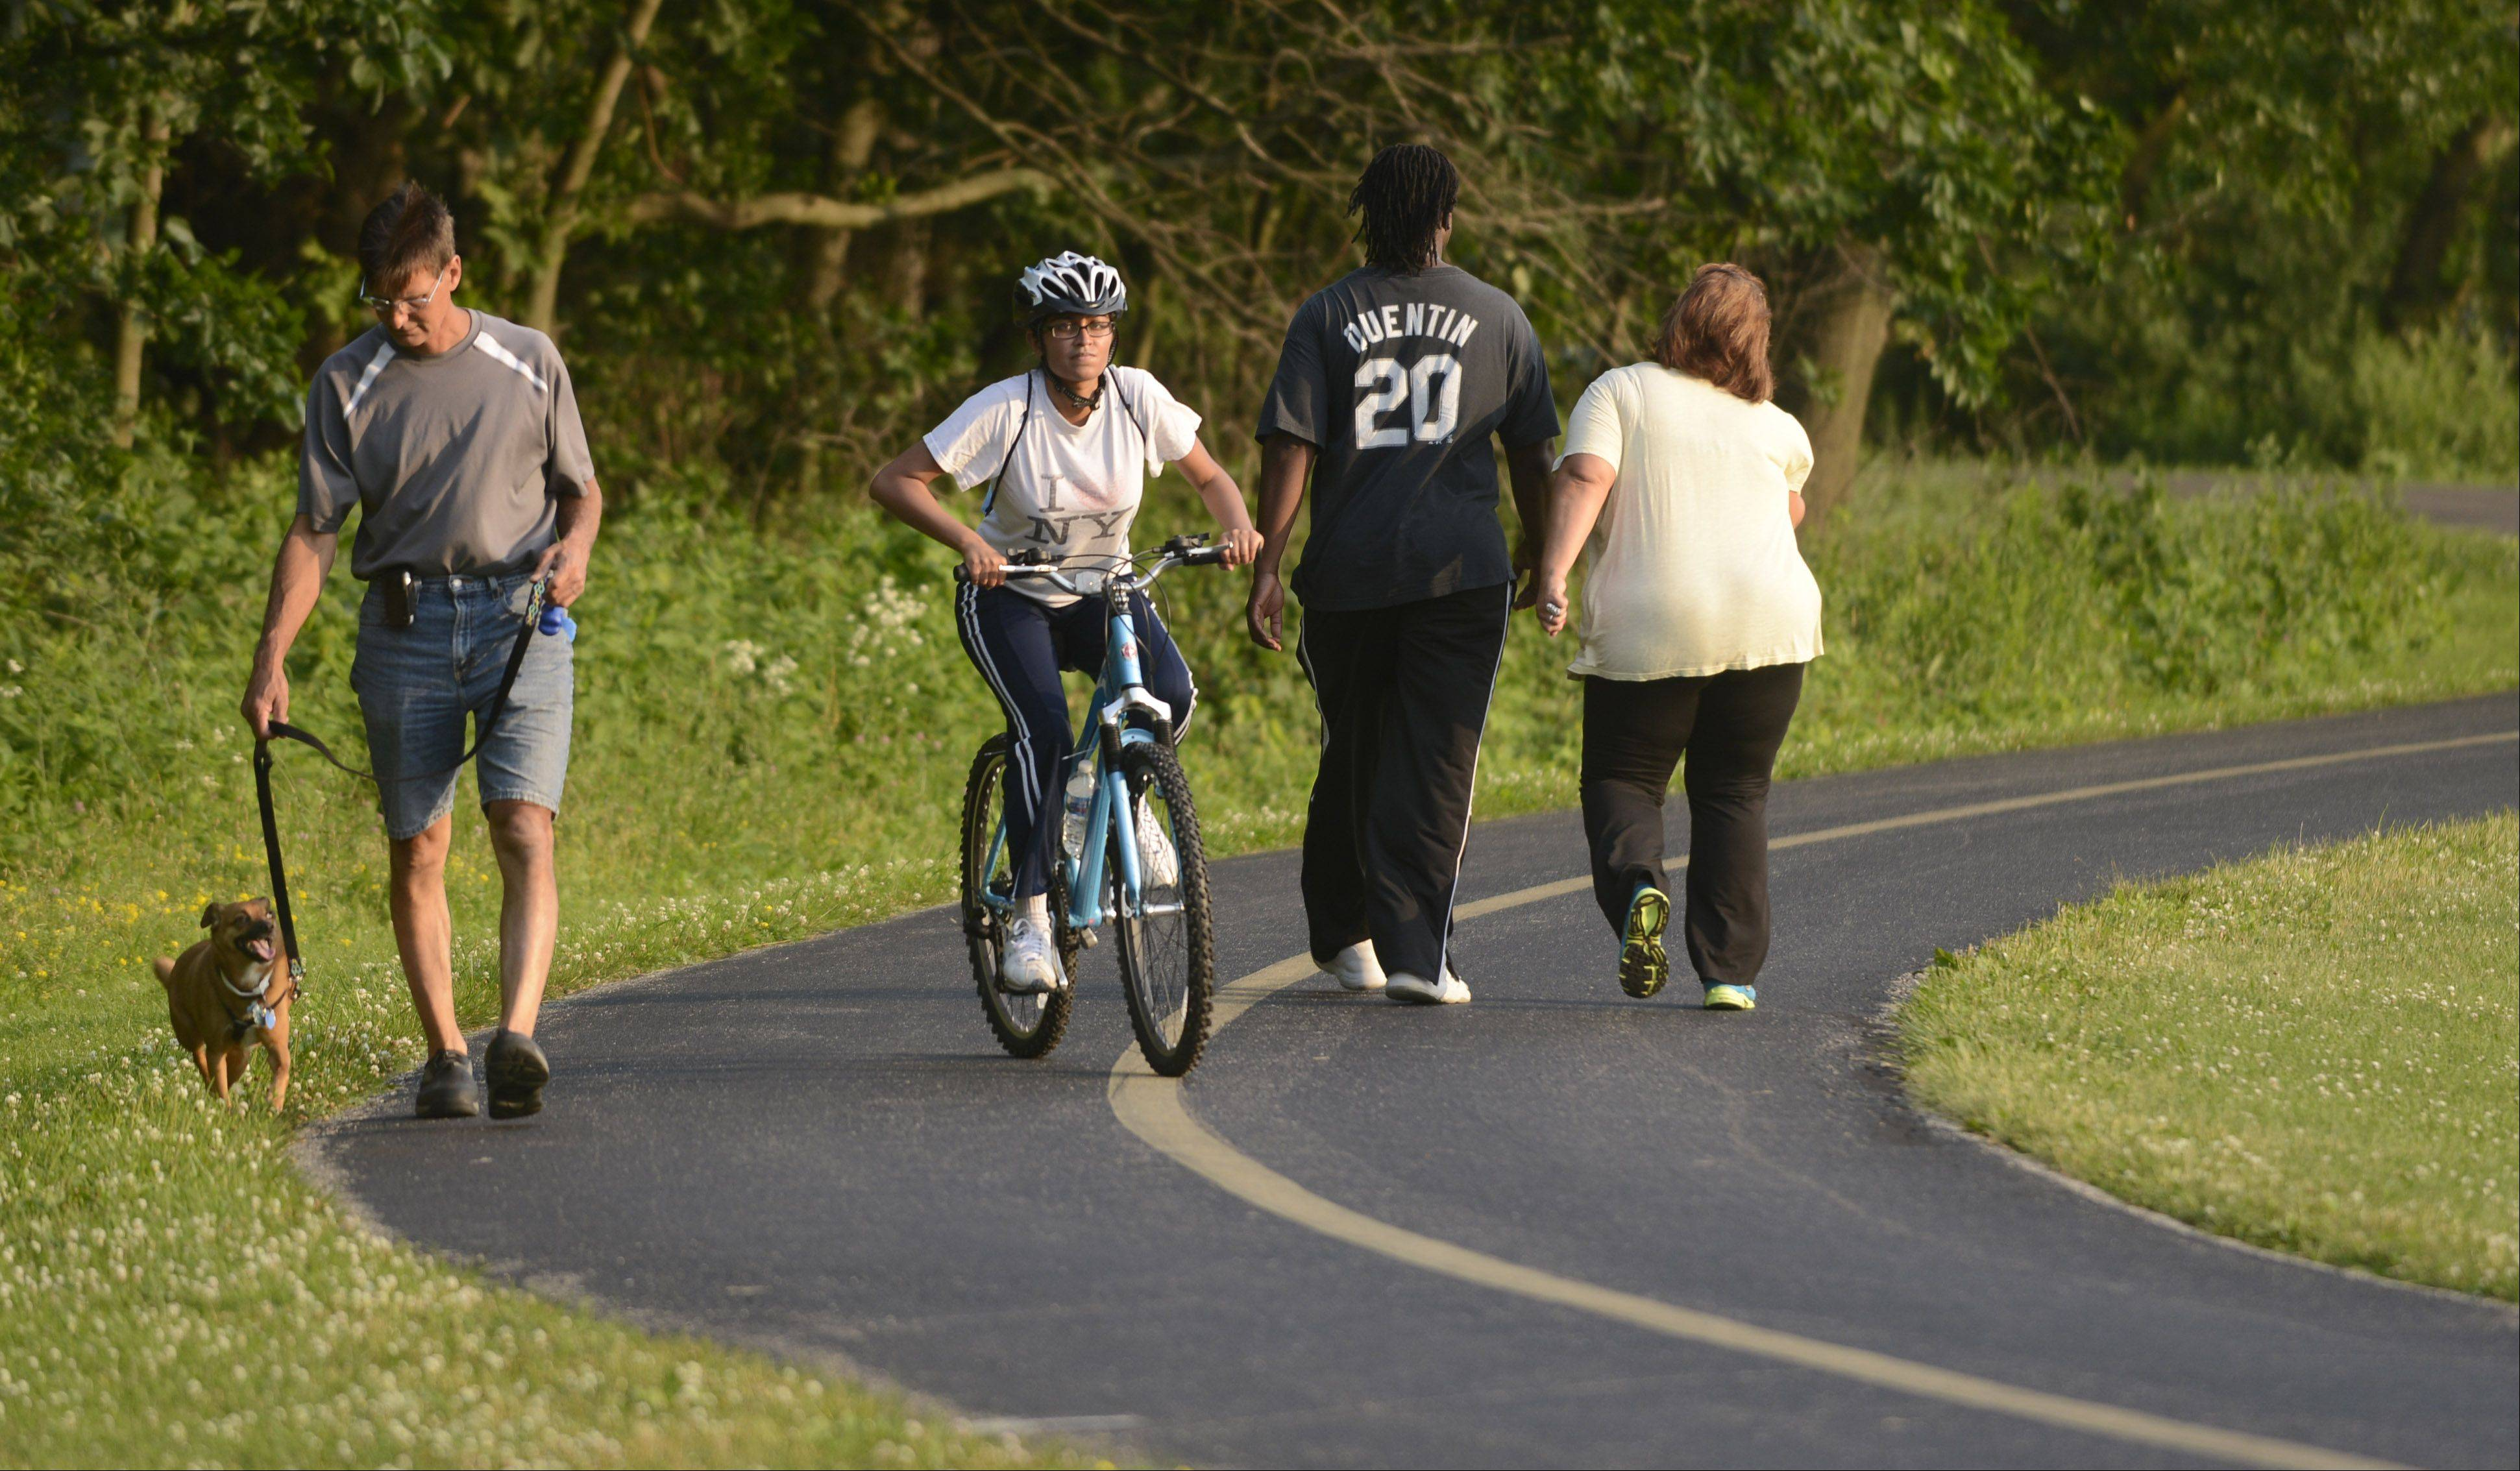 A cyclist slows to ride past pedestrians on the Busse Woods bike path. Changes at the Lake Arlington trail could have implications for safety on other trails in the suburbs.